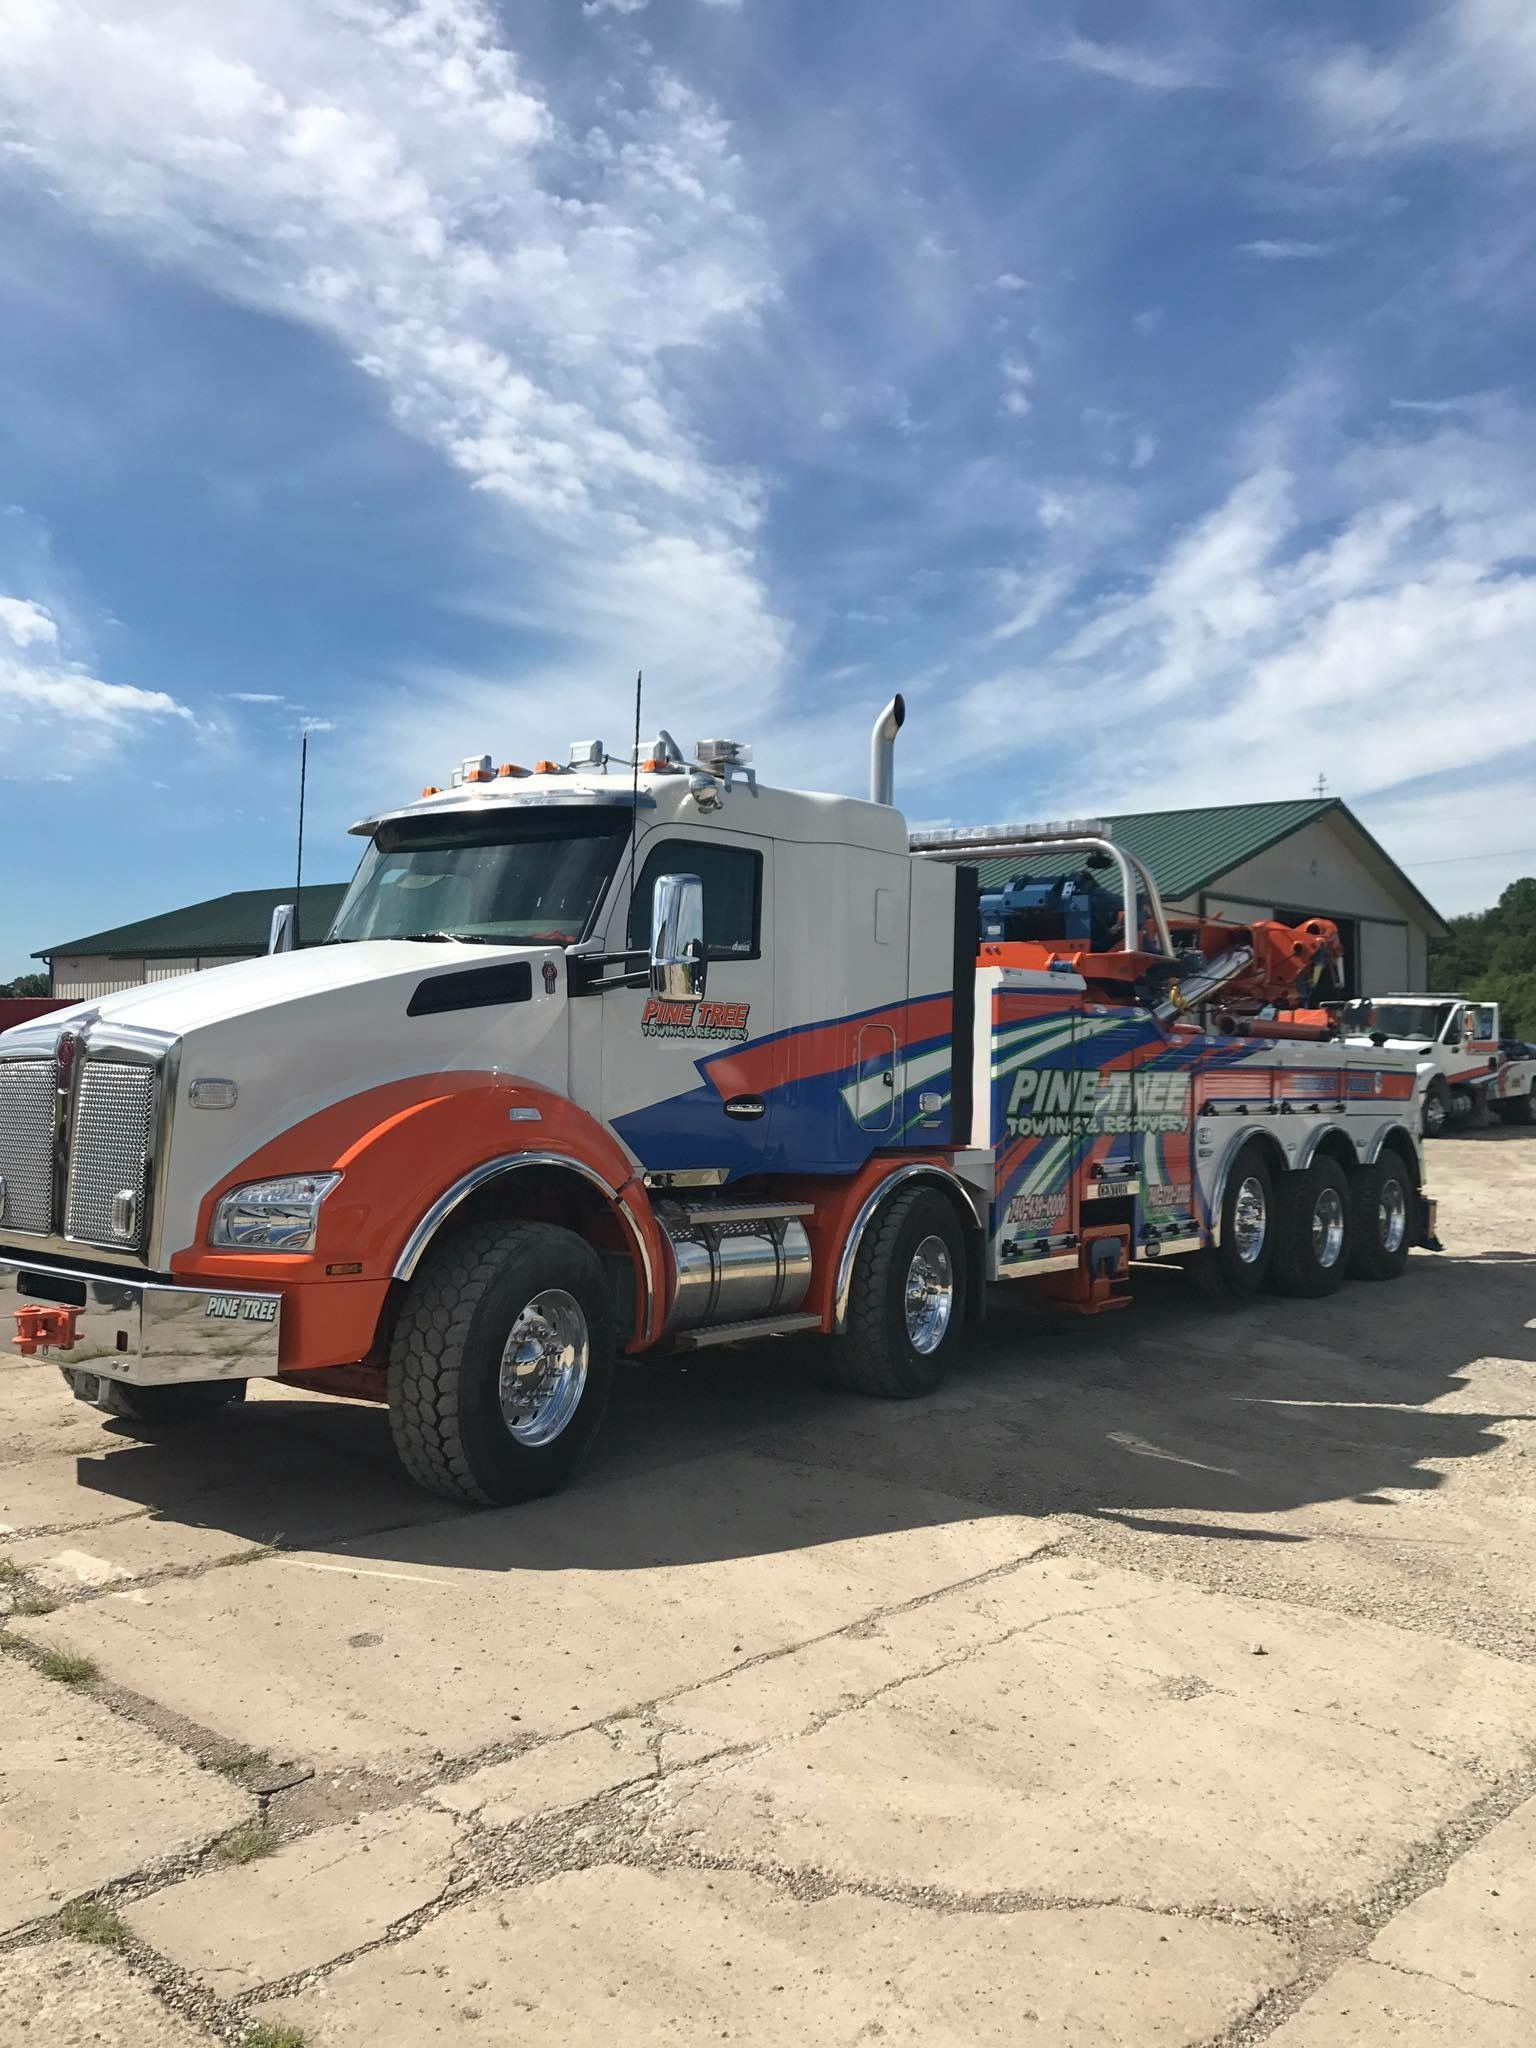 Pine Tree Towing And Recovery Cambridge Oh Kenworth T880 Twin Steer W Century 1150 Rotator Car Hauler Trailer Big Trucks Trucks